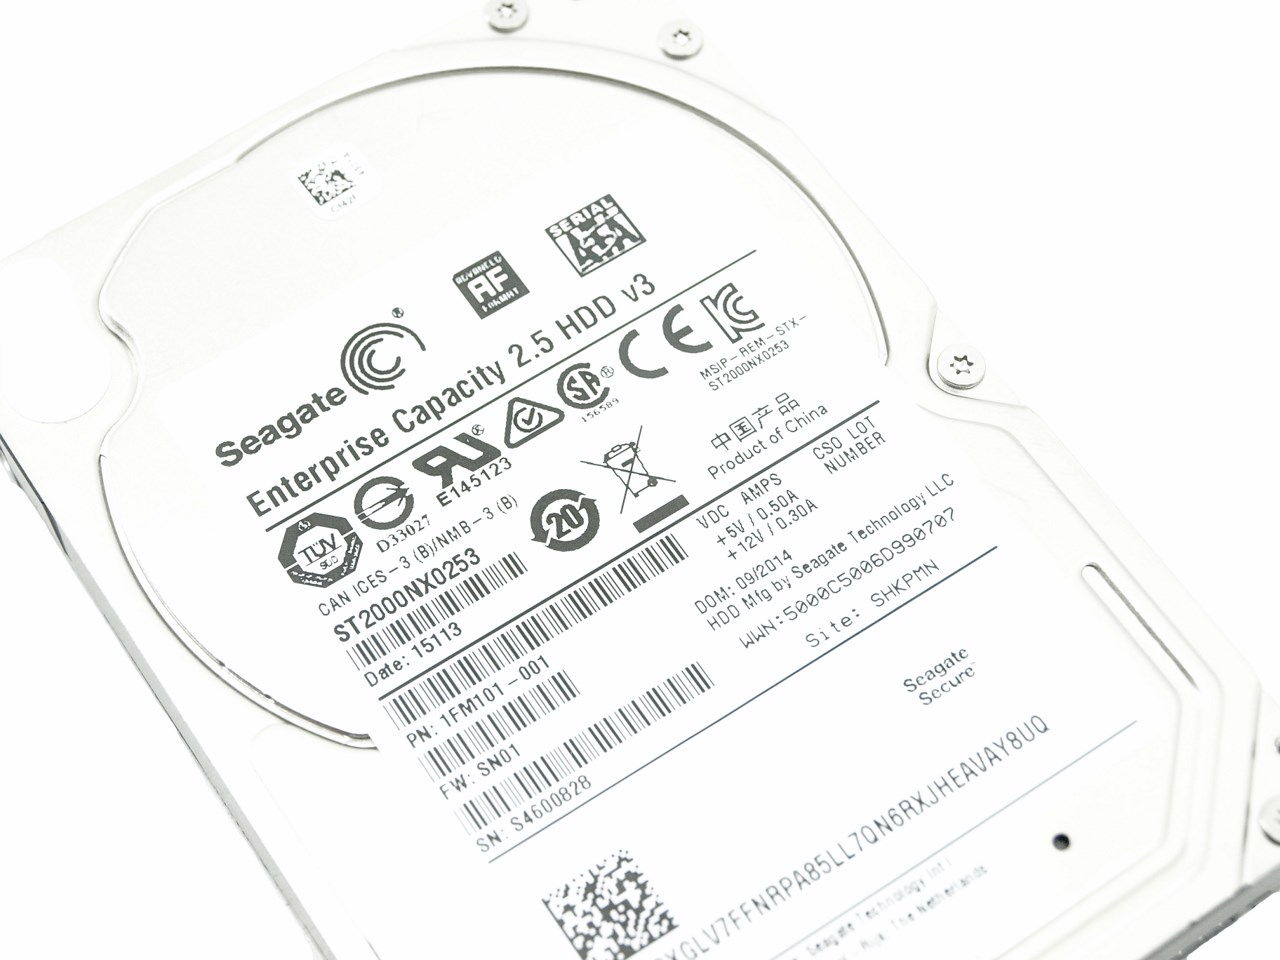 seagate enterprise capacity 2 5 hdd v3 2tb sata iii review